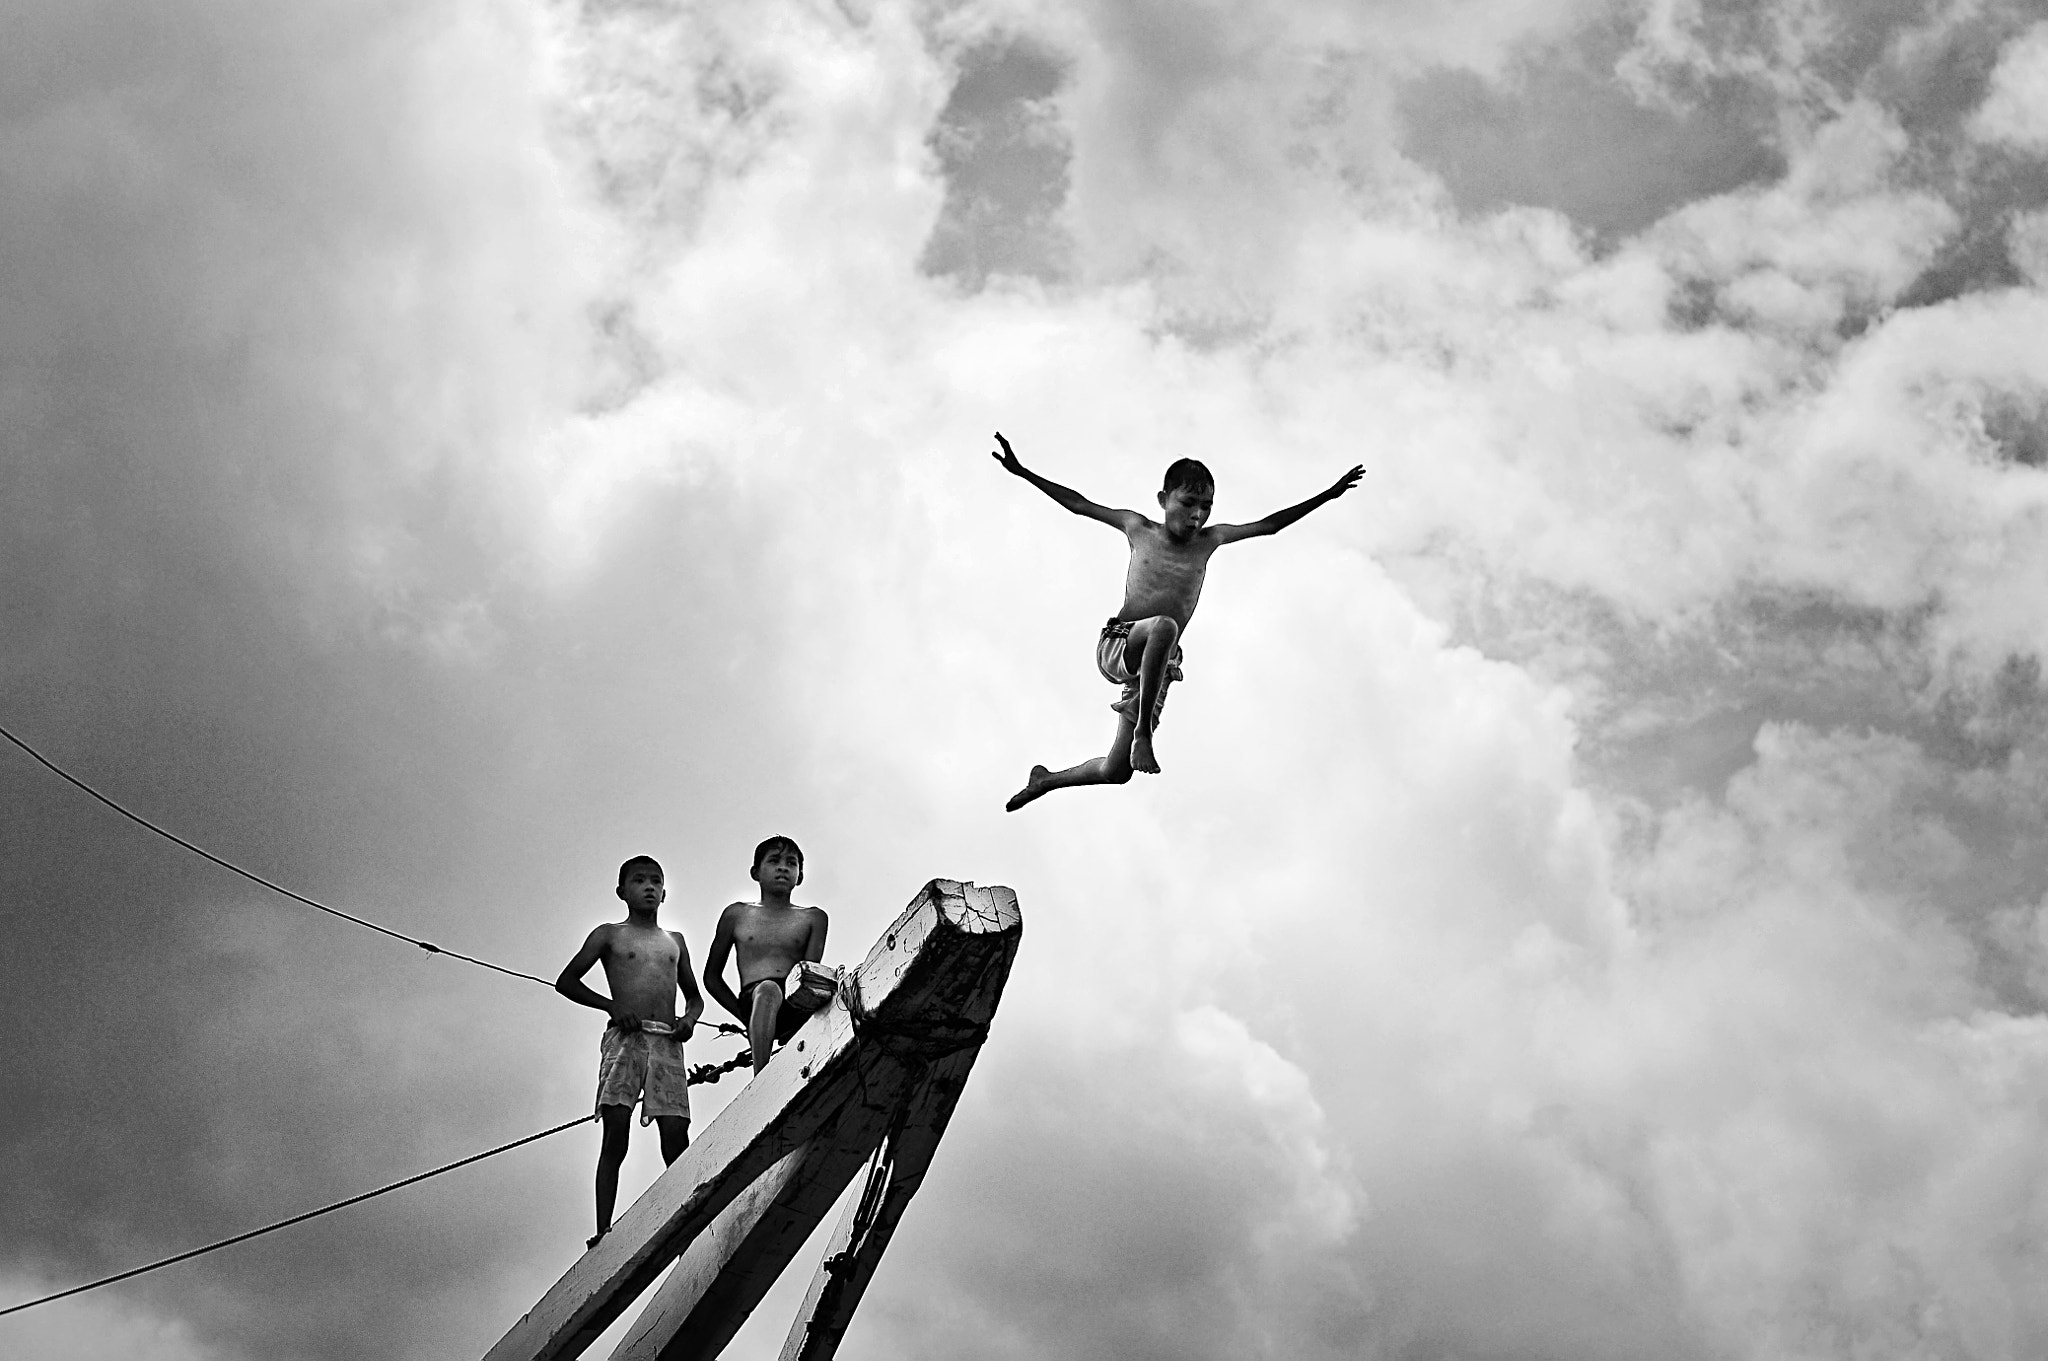 Photograph Leap of innocence by Rio Krisna Murti on 500px